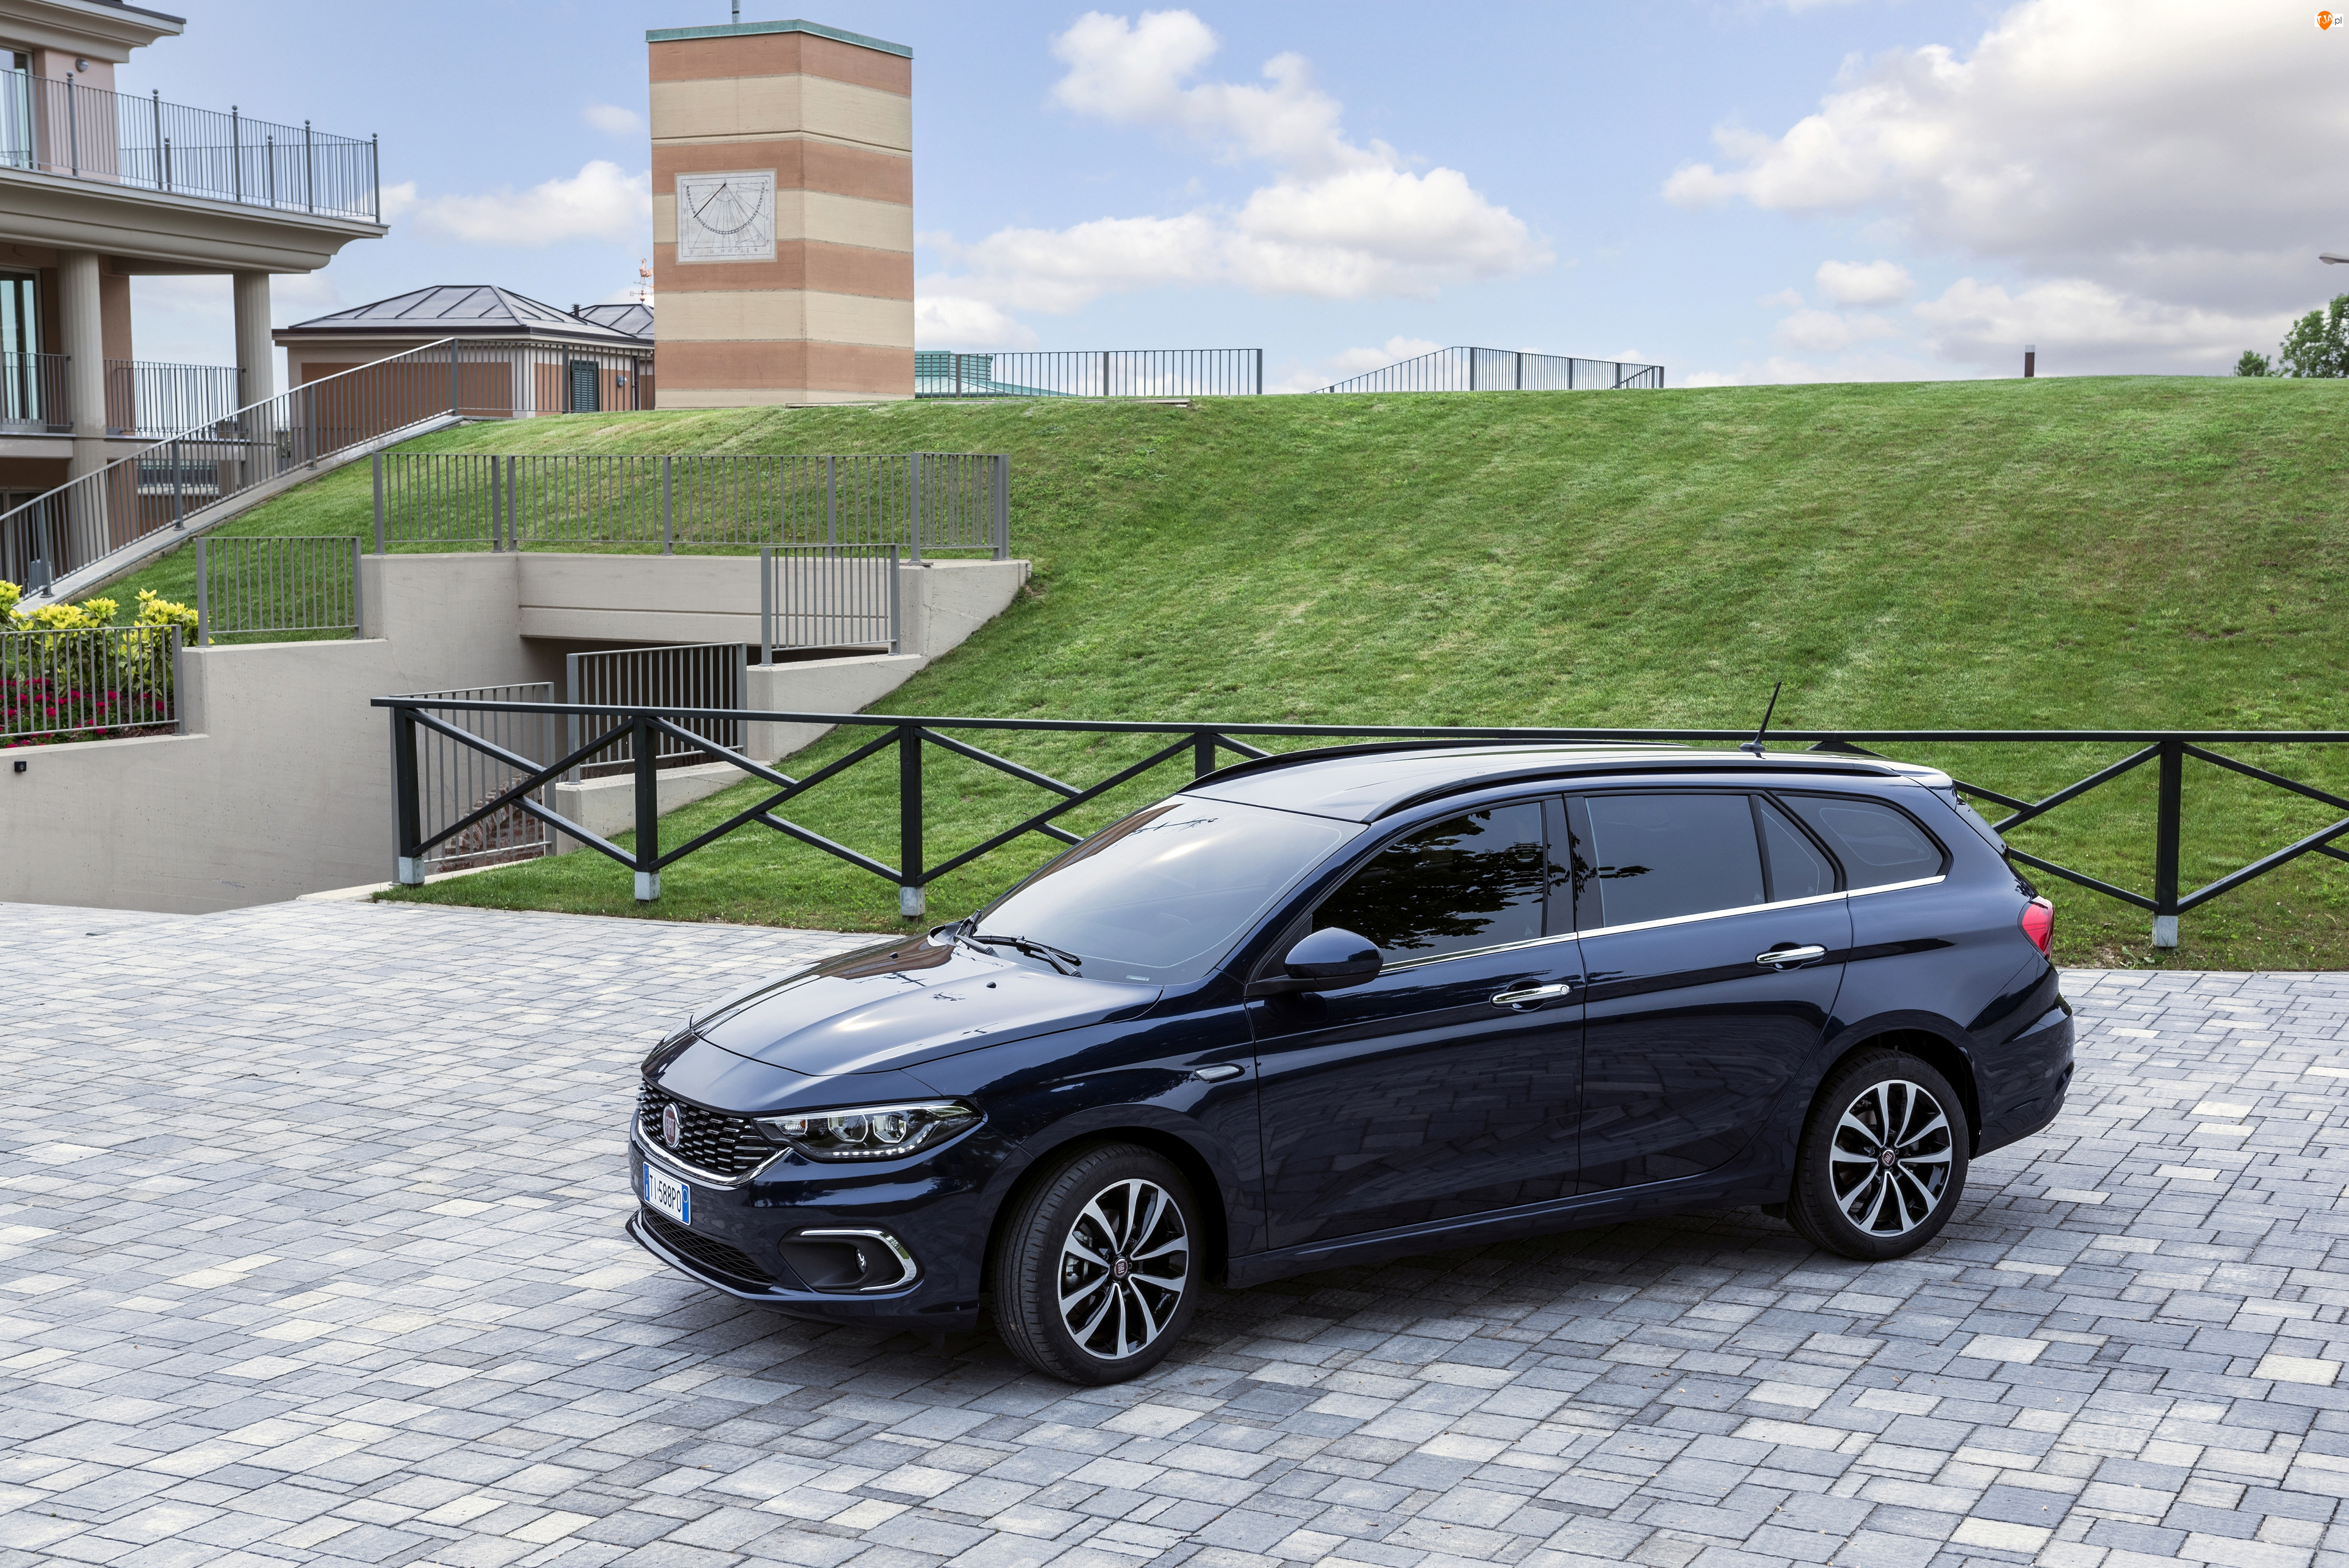 Fiat Tipo Station Wagon, 2016